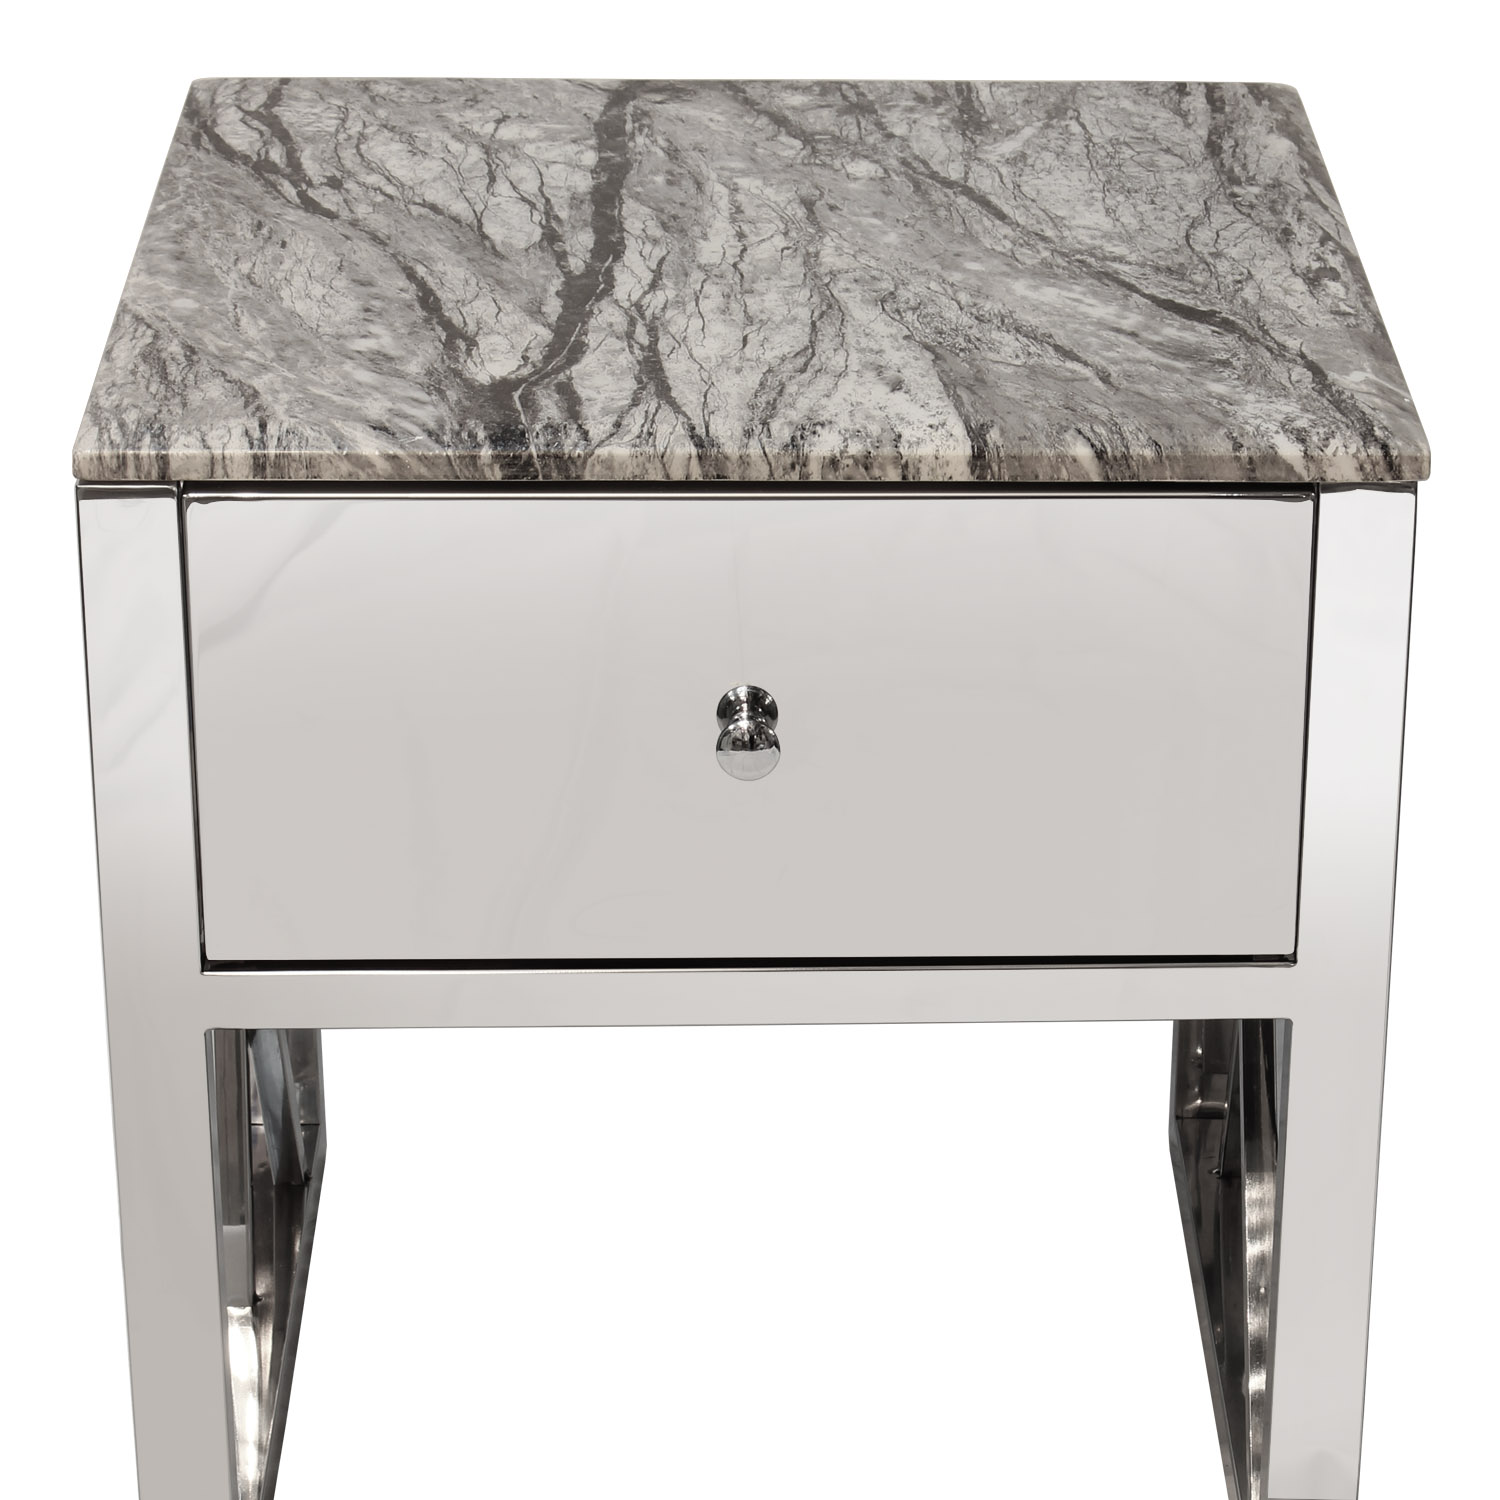 size 40 9aaec 3c699 Details about Side End Table Grey Marble Top Bedside Sofa Table With Drawer  Home Furniture